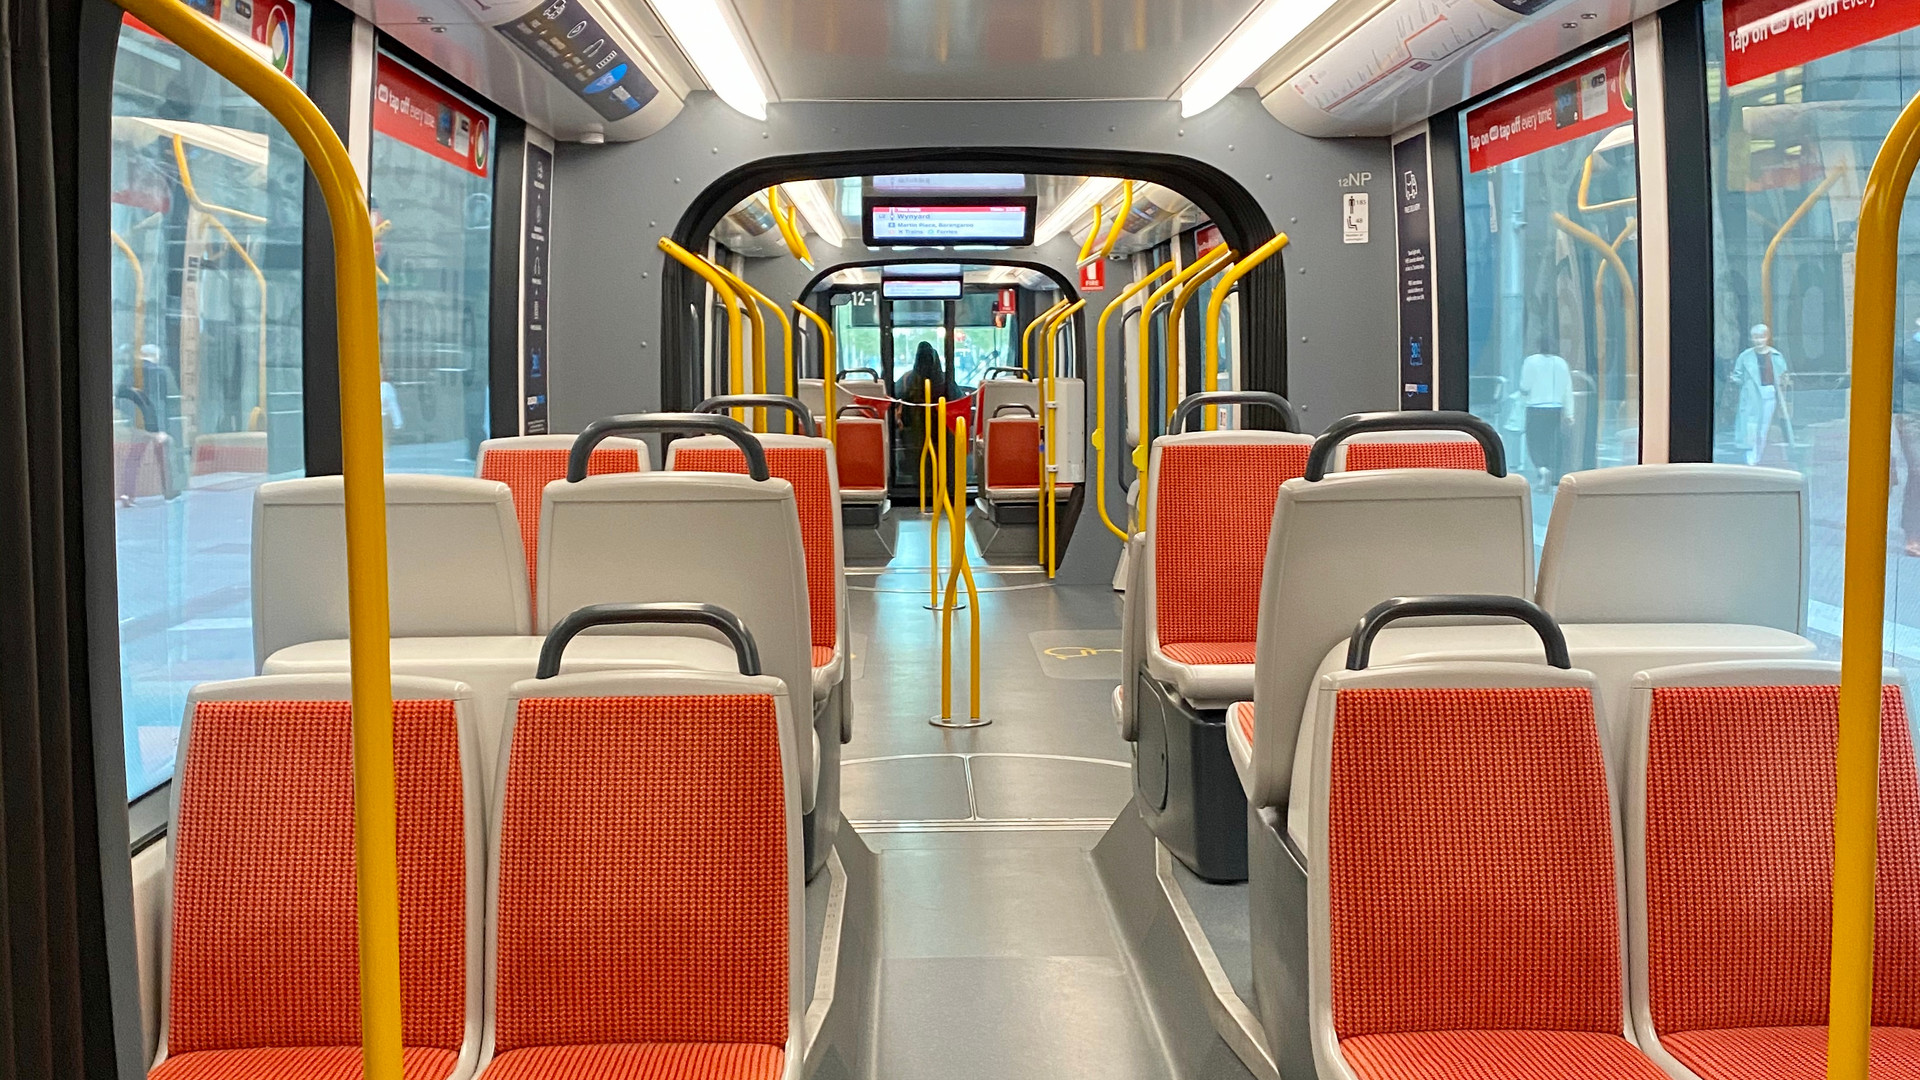 Disinfection services for public transport